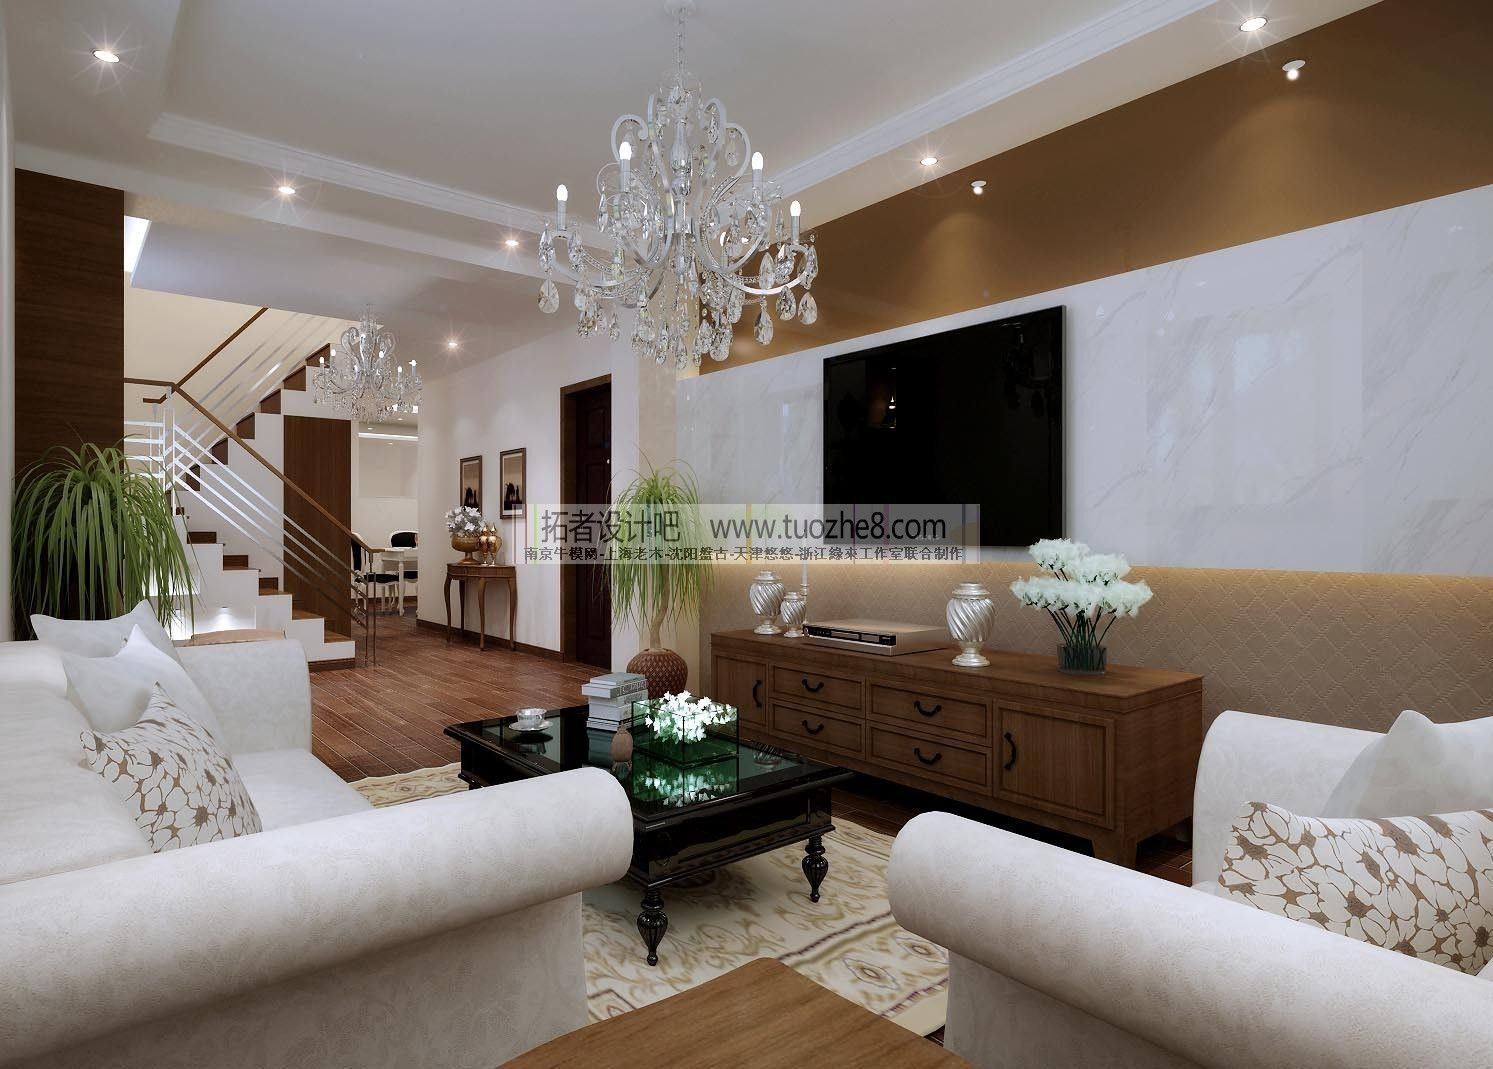 Stylish interior design living room restau 3d model for Model interior design living room